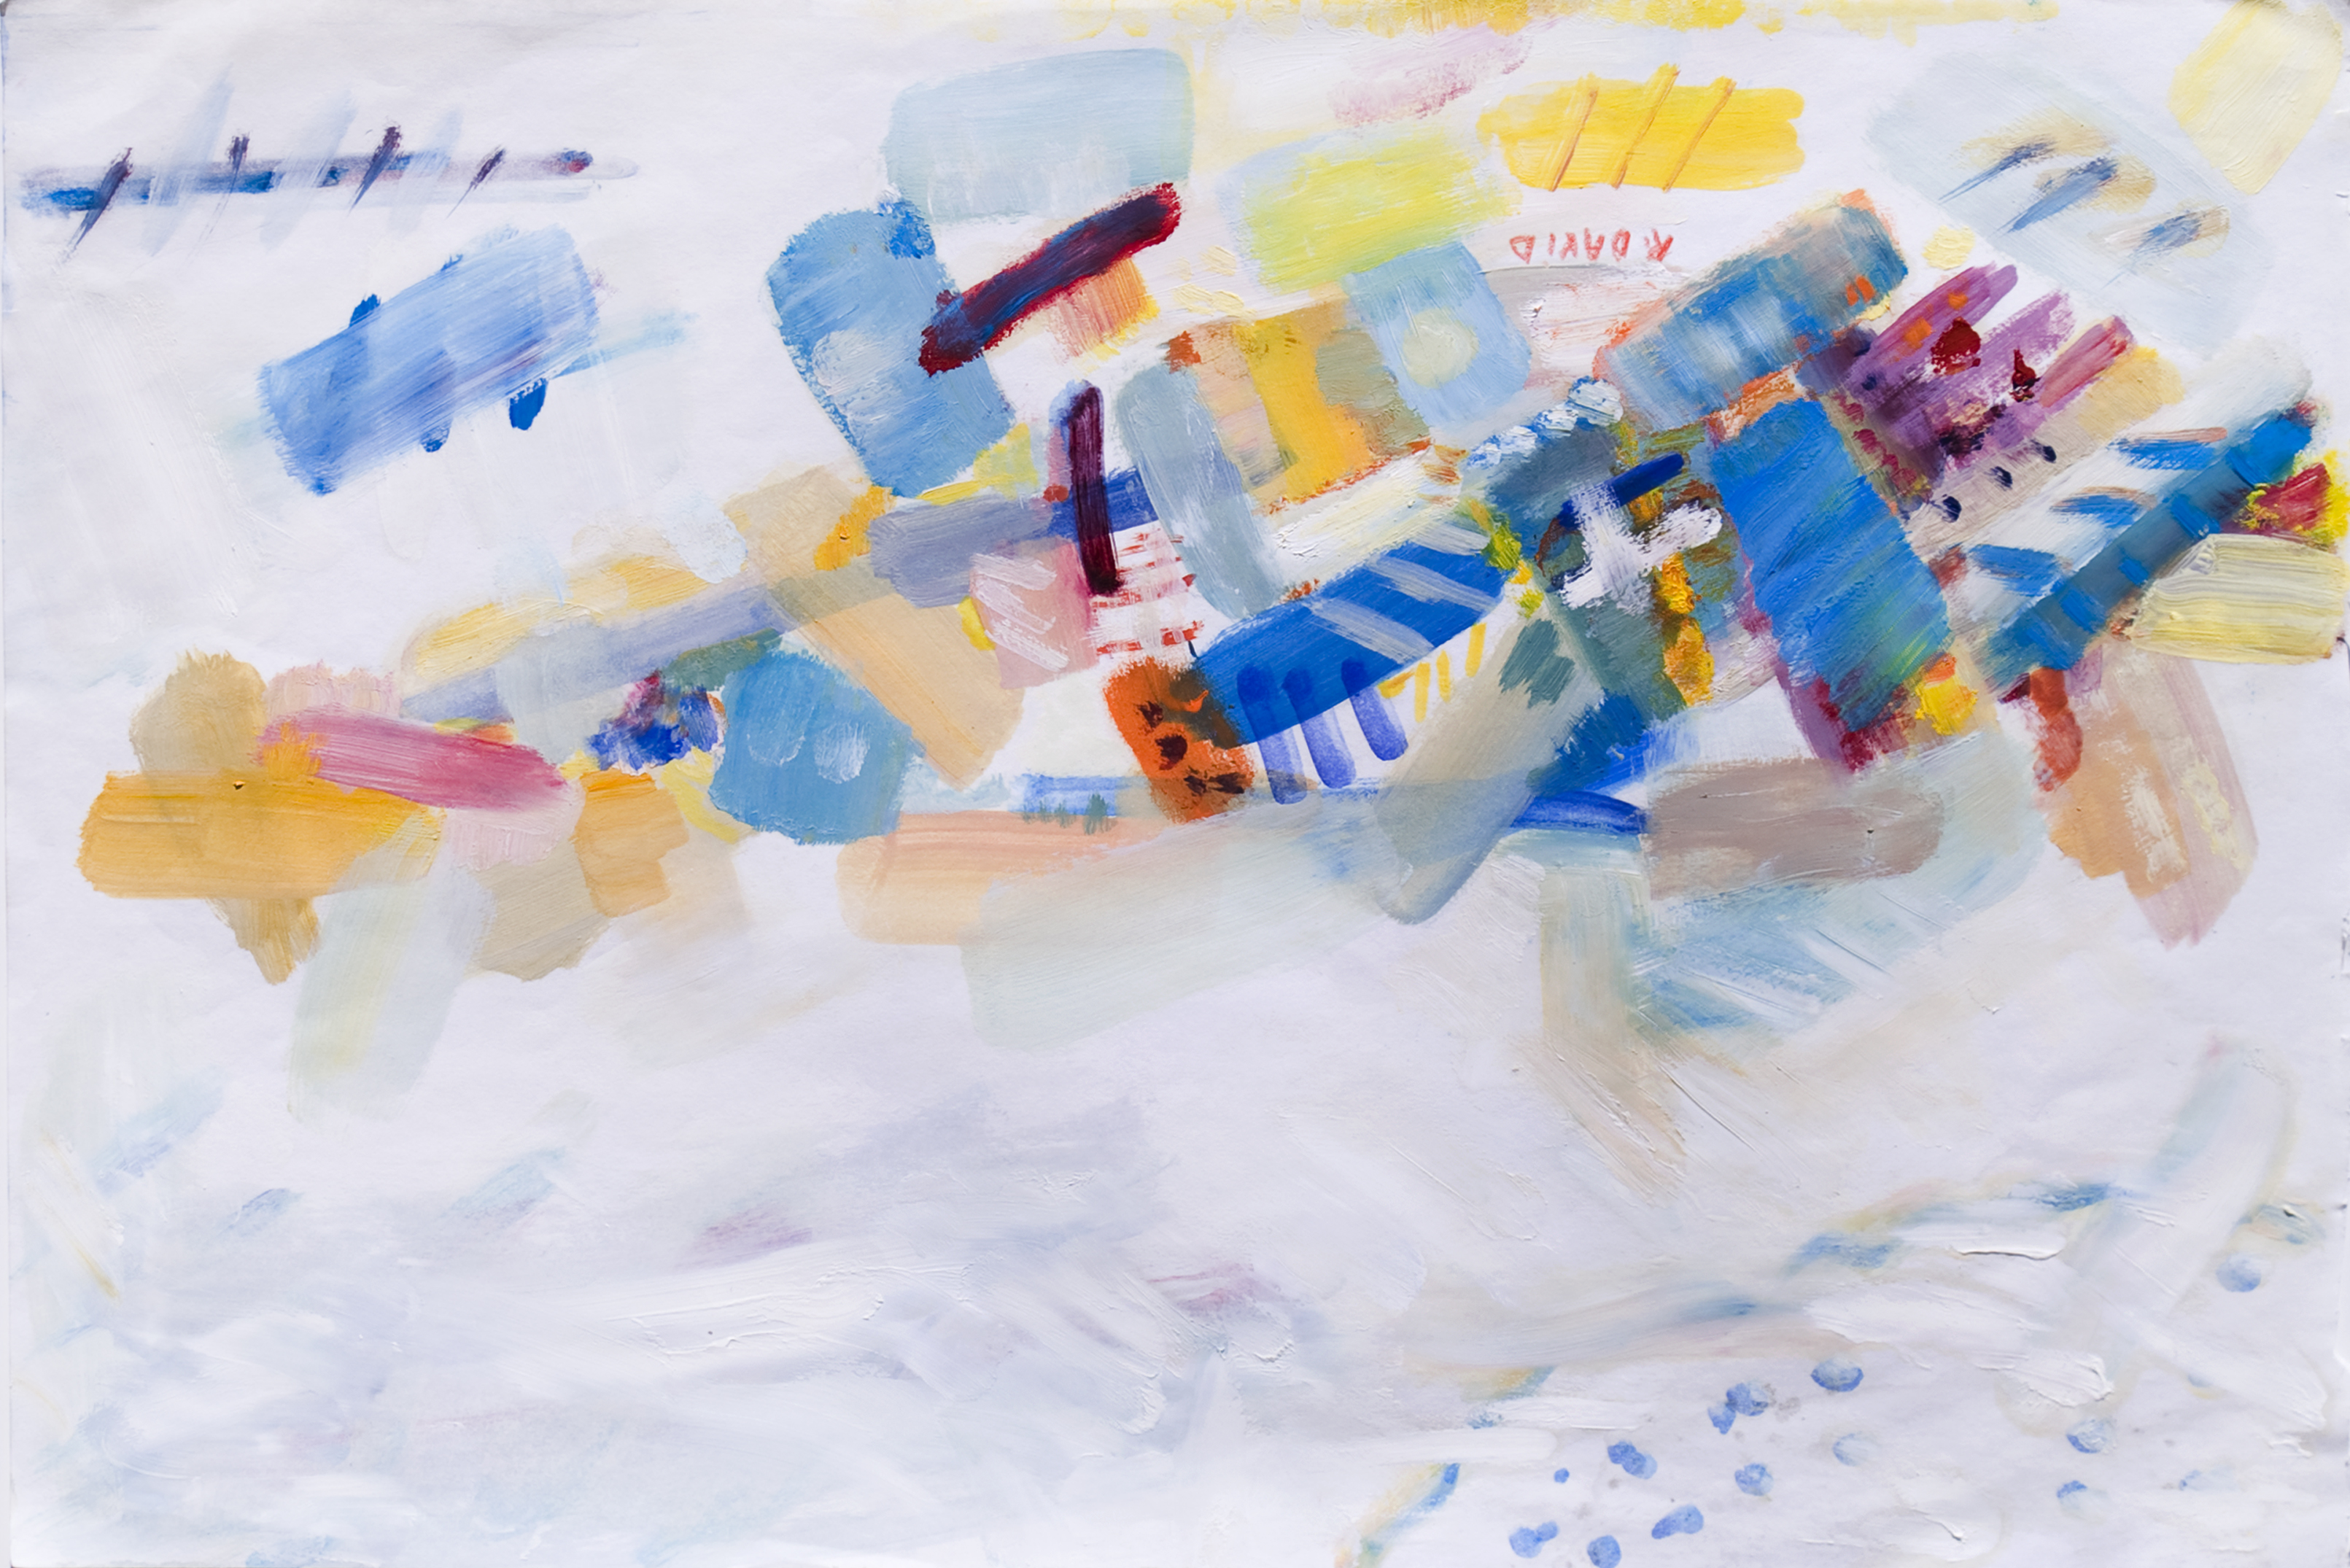 Abstrait artwork by Rita David - art listed for sale on Artplode